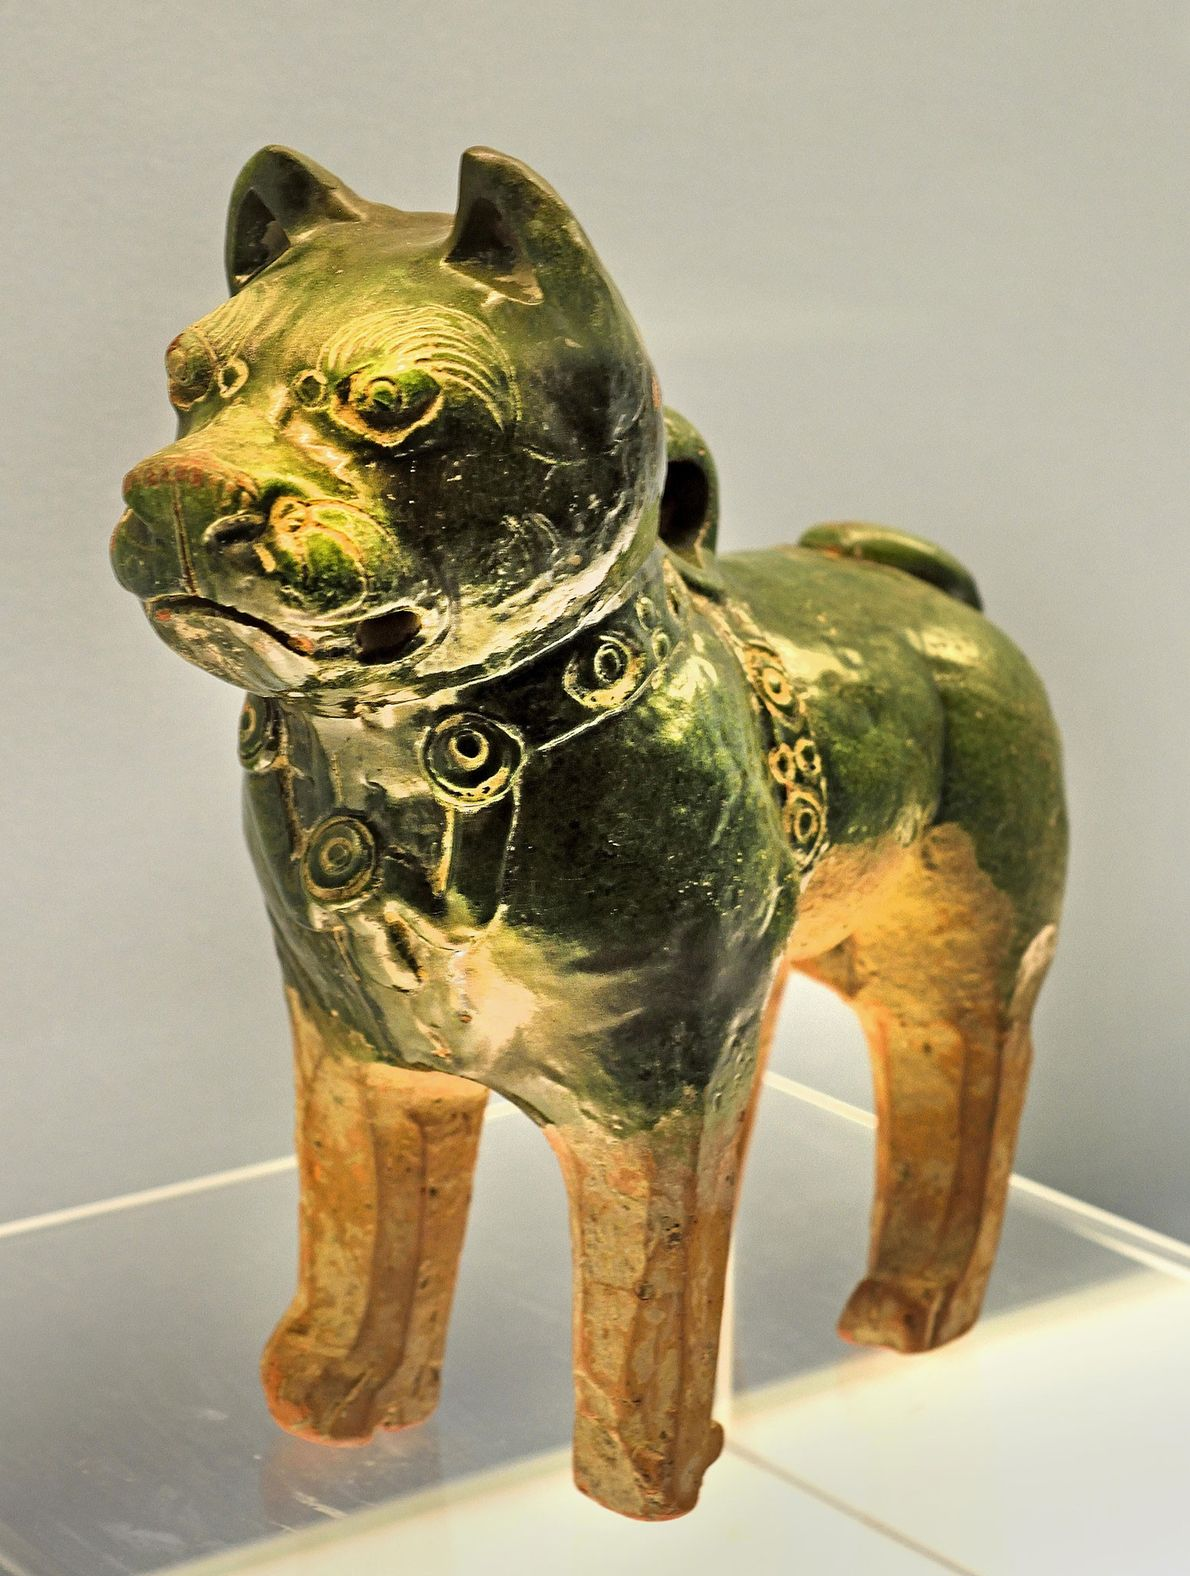 This glazed ceramic dog from the Eastern Han Dynasty (25 B.C. - 220 A.D.) may represent ...